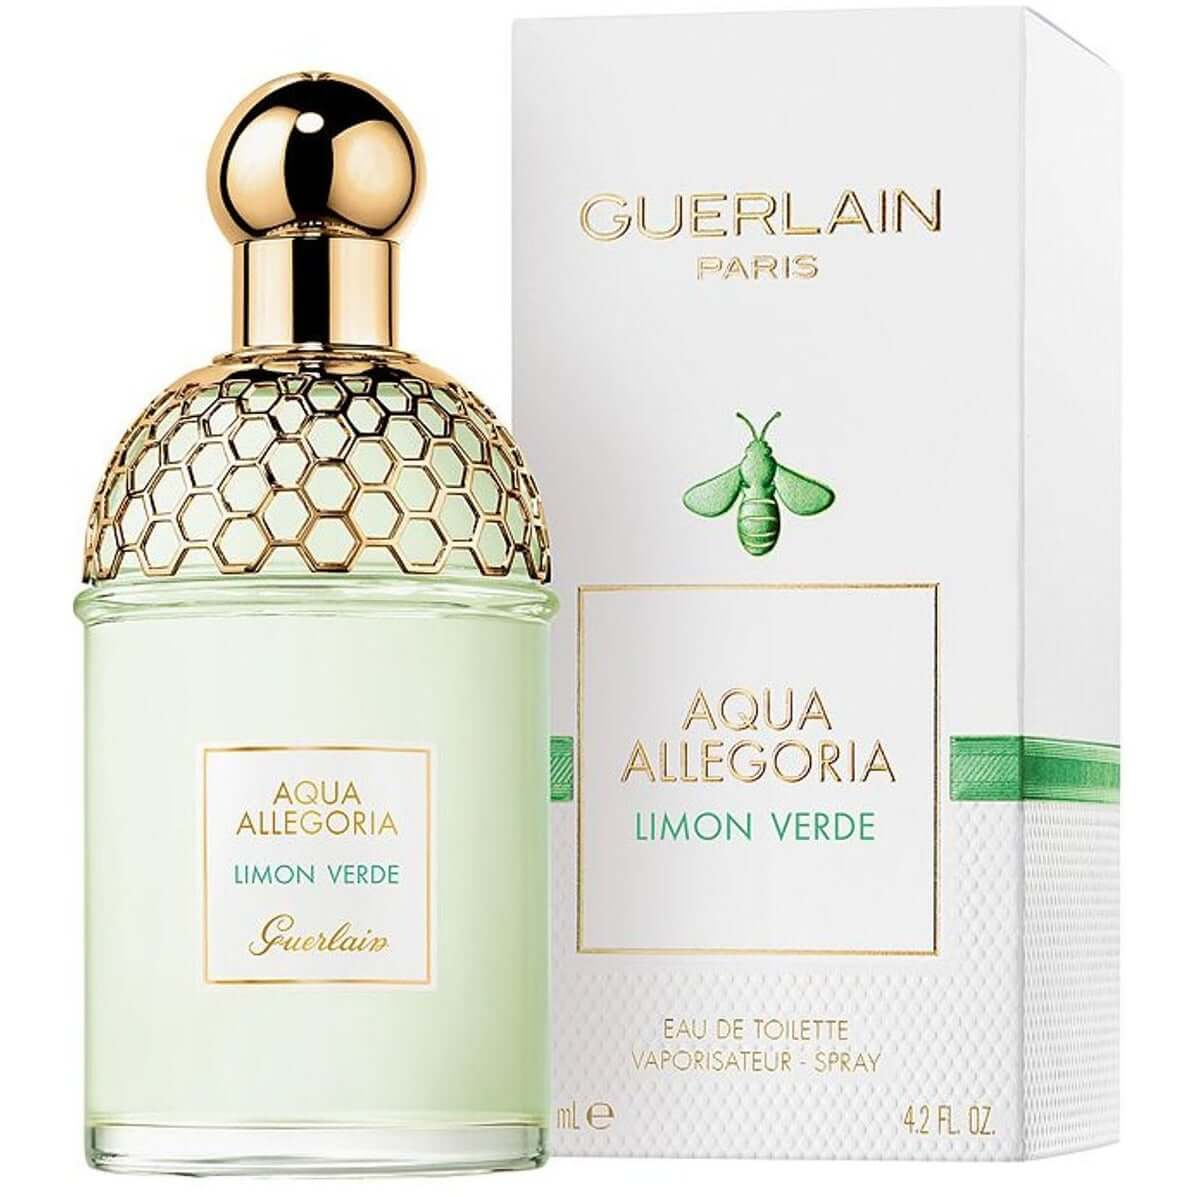 Aqua Allegoria Limon Verde by Guerlain for her EDT 4.2 oz New in Box